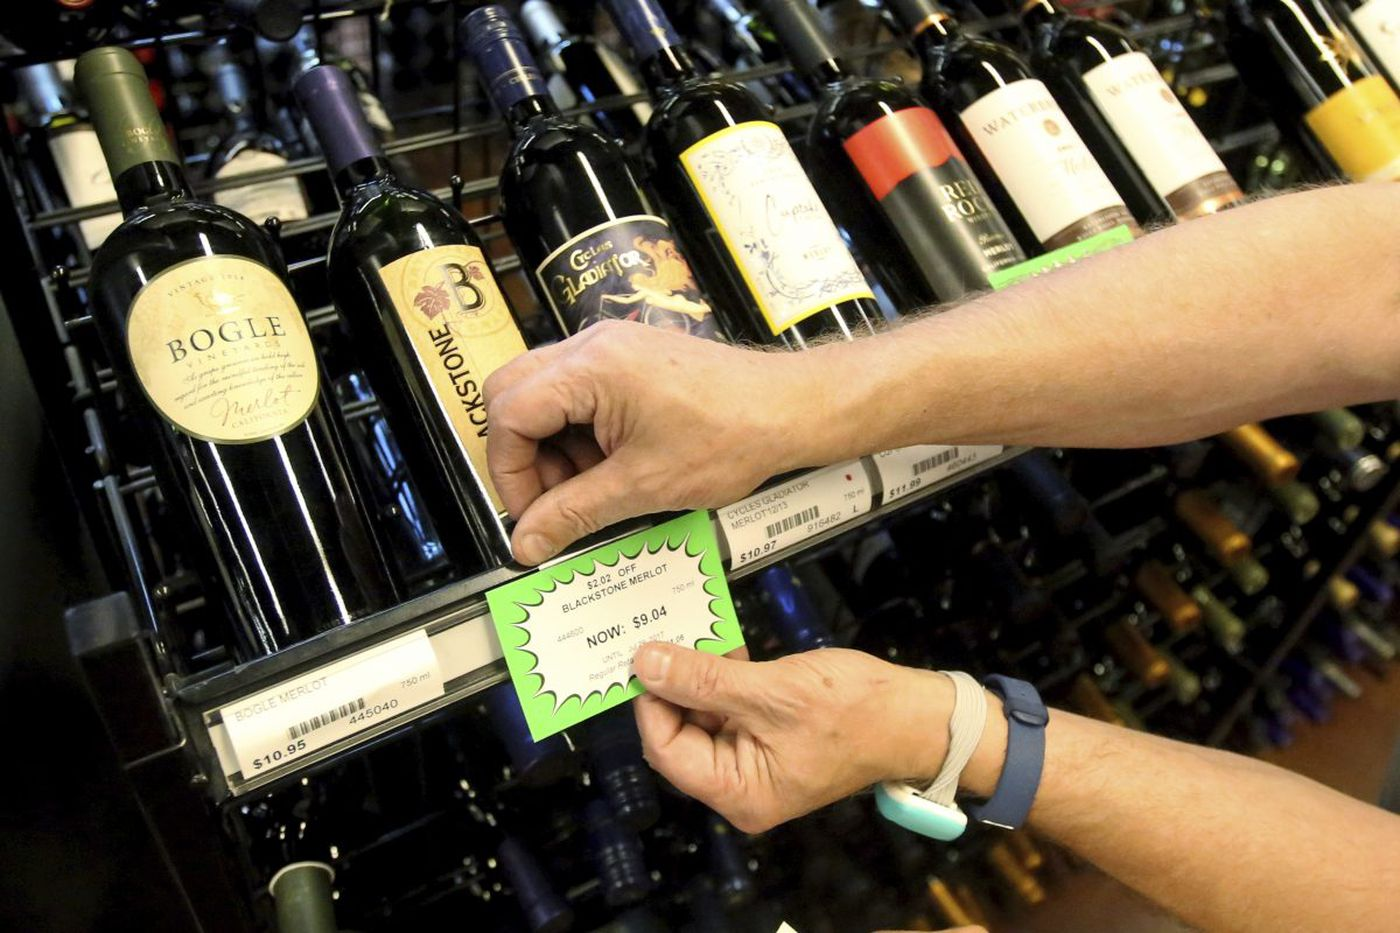 What Pennsylvania should do is get out of the liquor business